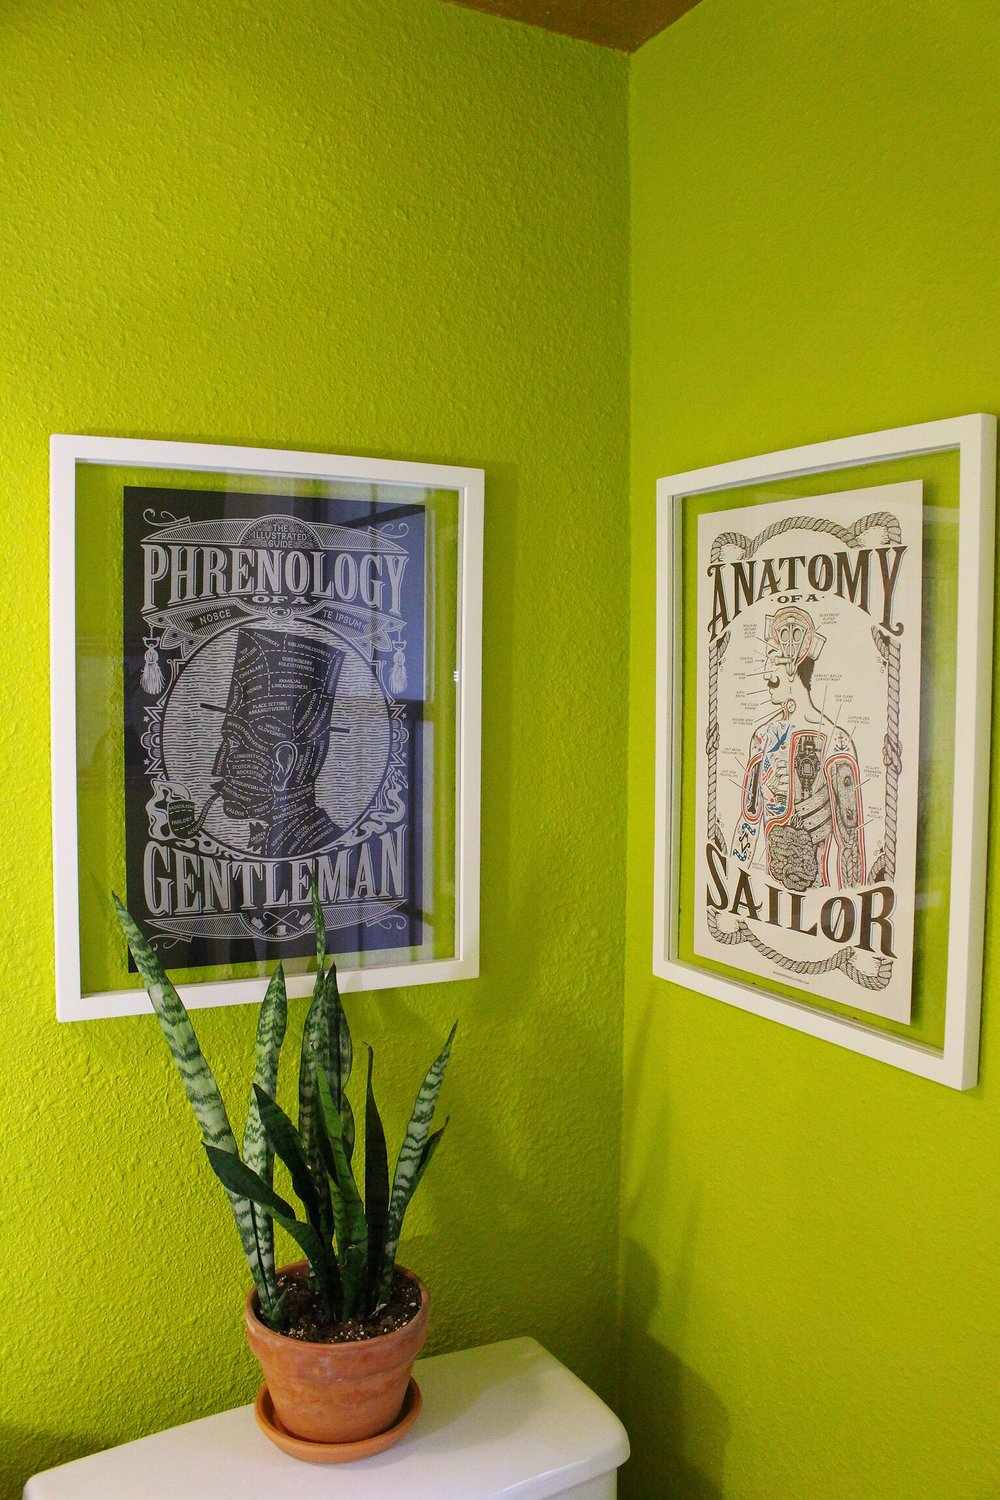 These cool prints   were Dave finds also from Etsy and I love the manly vibes they bring to this room.